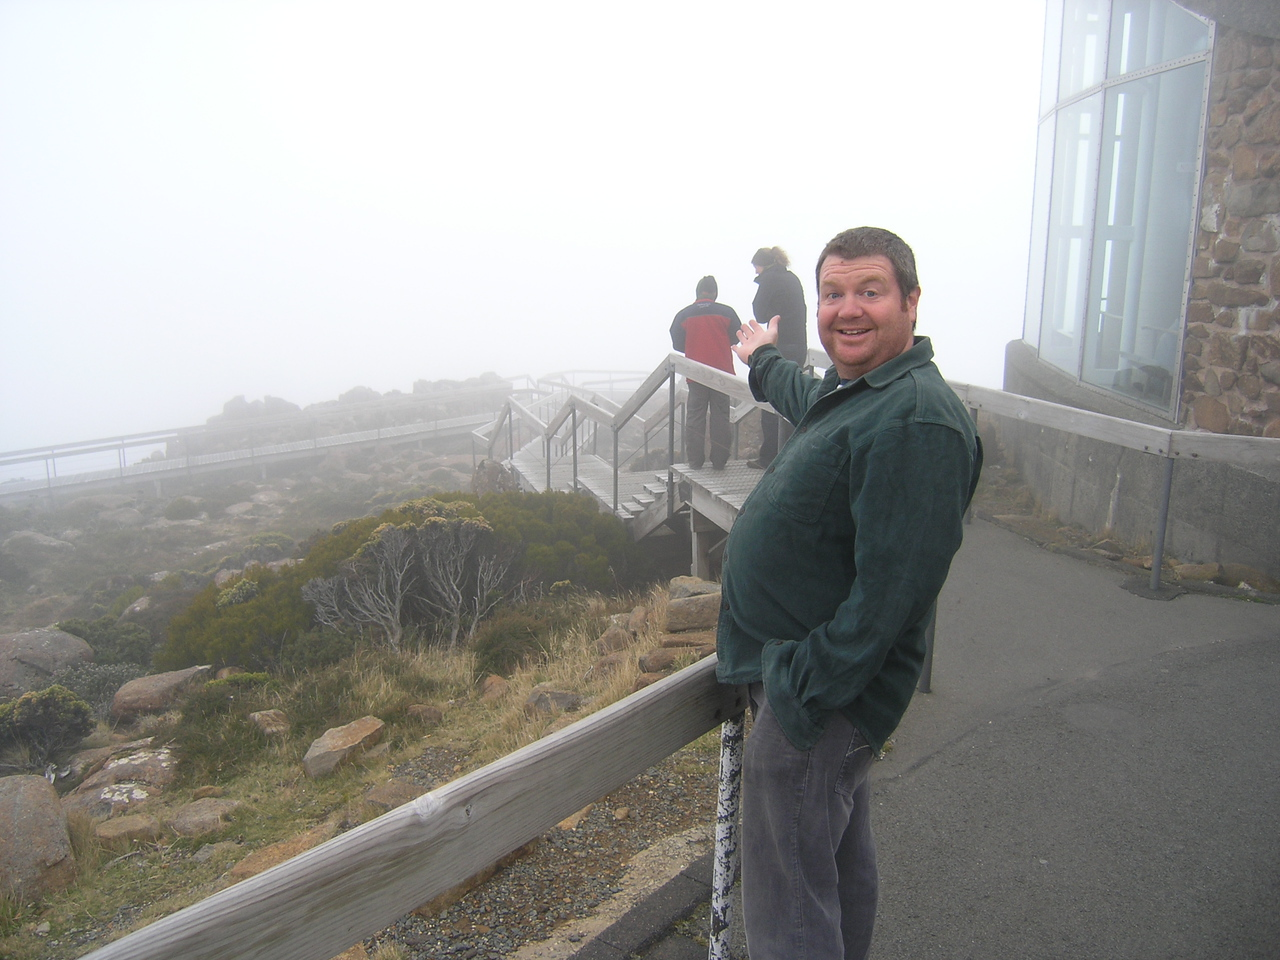 Look at that view from Mount Wellington